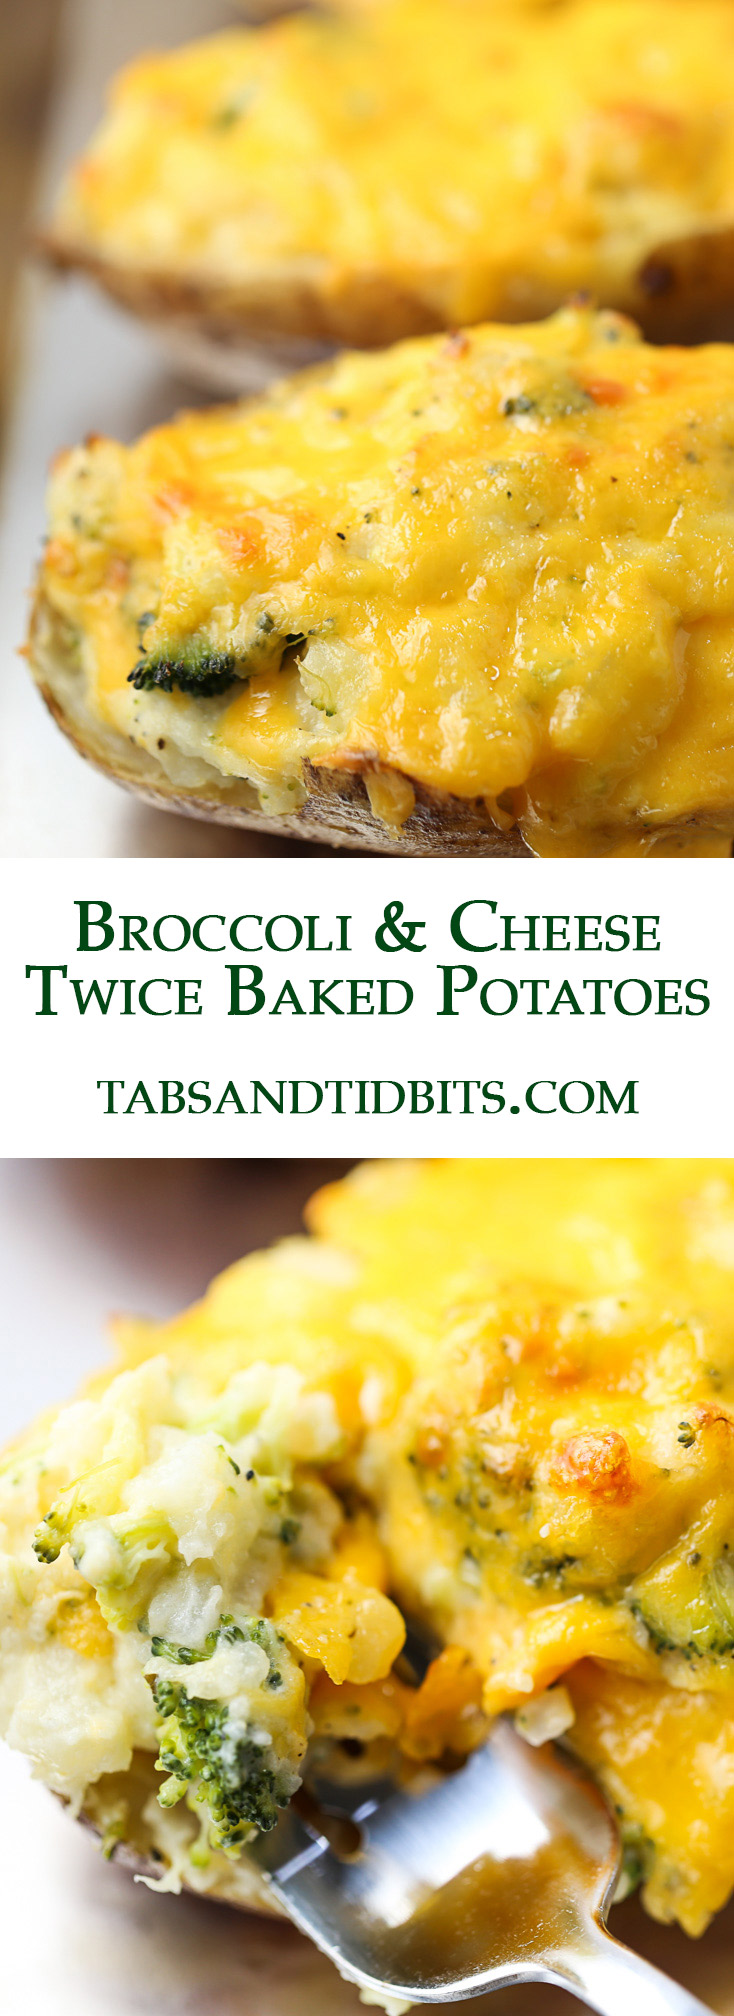 Potatoes baked up twice with ranch dressing, cheese, broccoli, and more cheese!